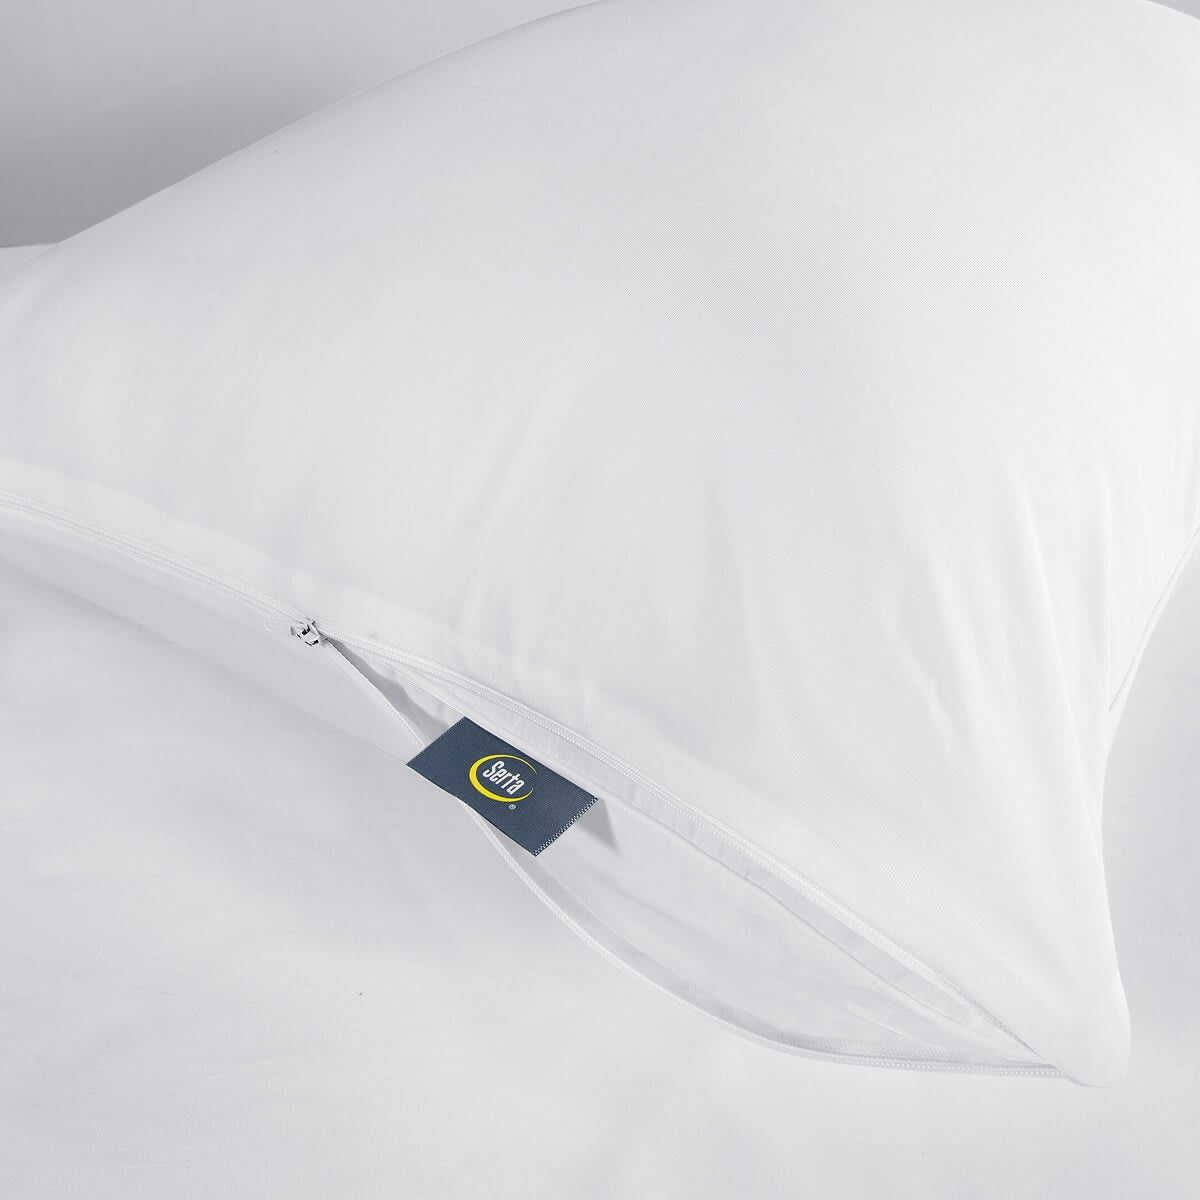 Serta Chill Luxe Pillow Protector - pillow on bed, showing tag detail